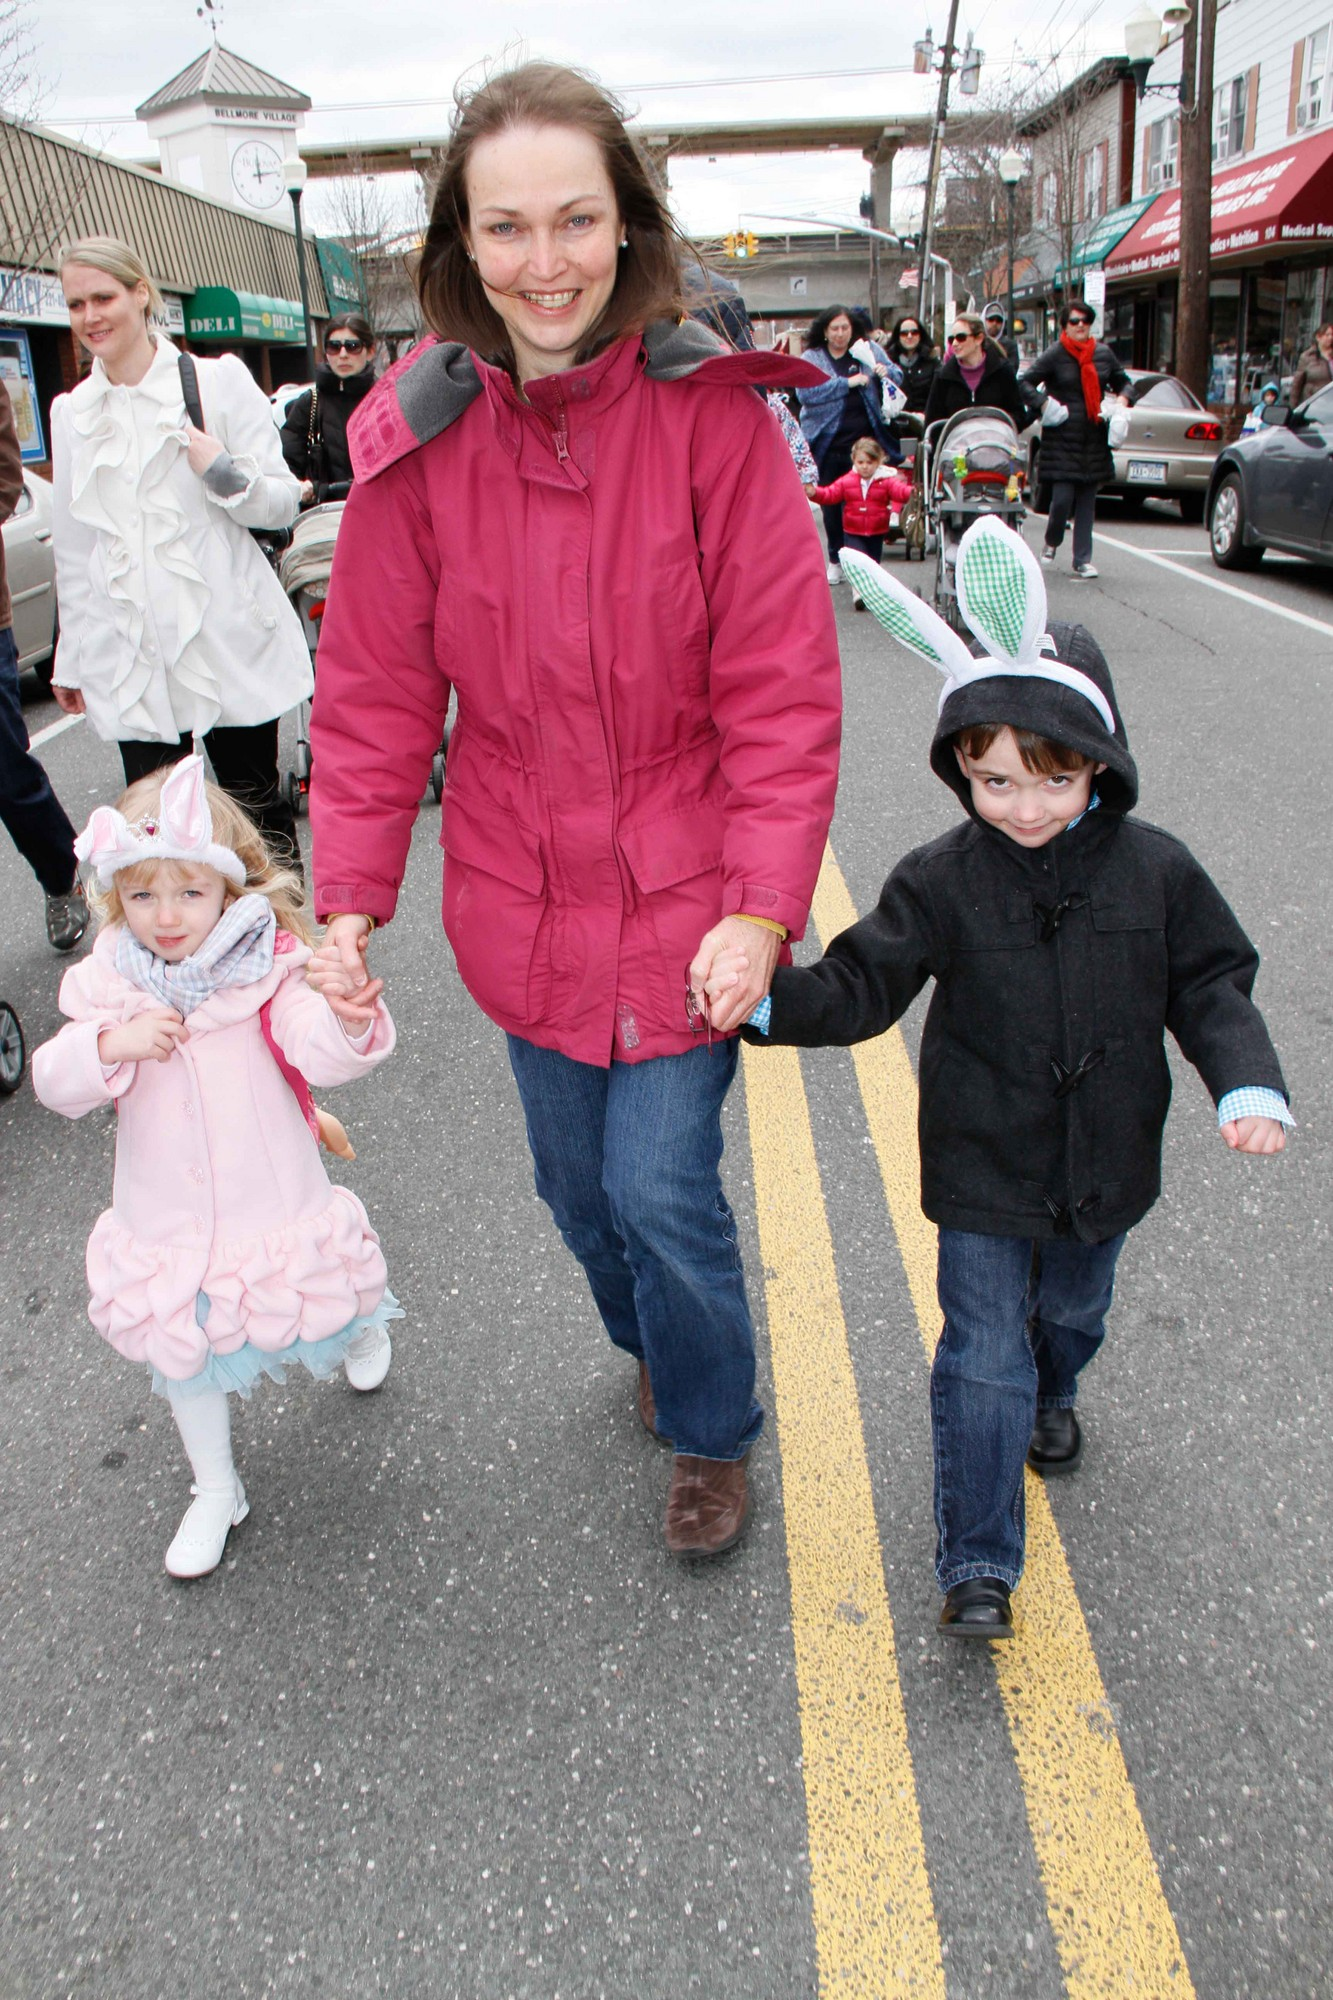 Cadence, left, and Brennan Grieve, both 3, marched down Bedford Avenue with their grandmother, Louise Sorger.